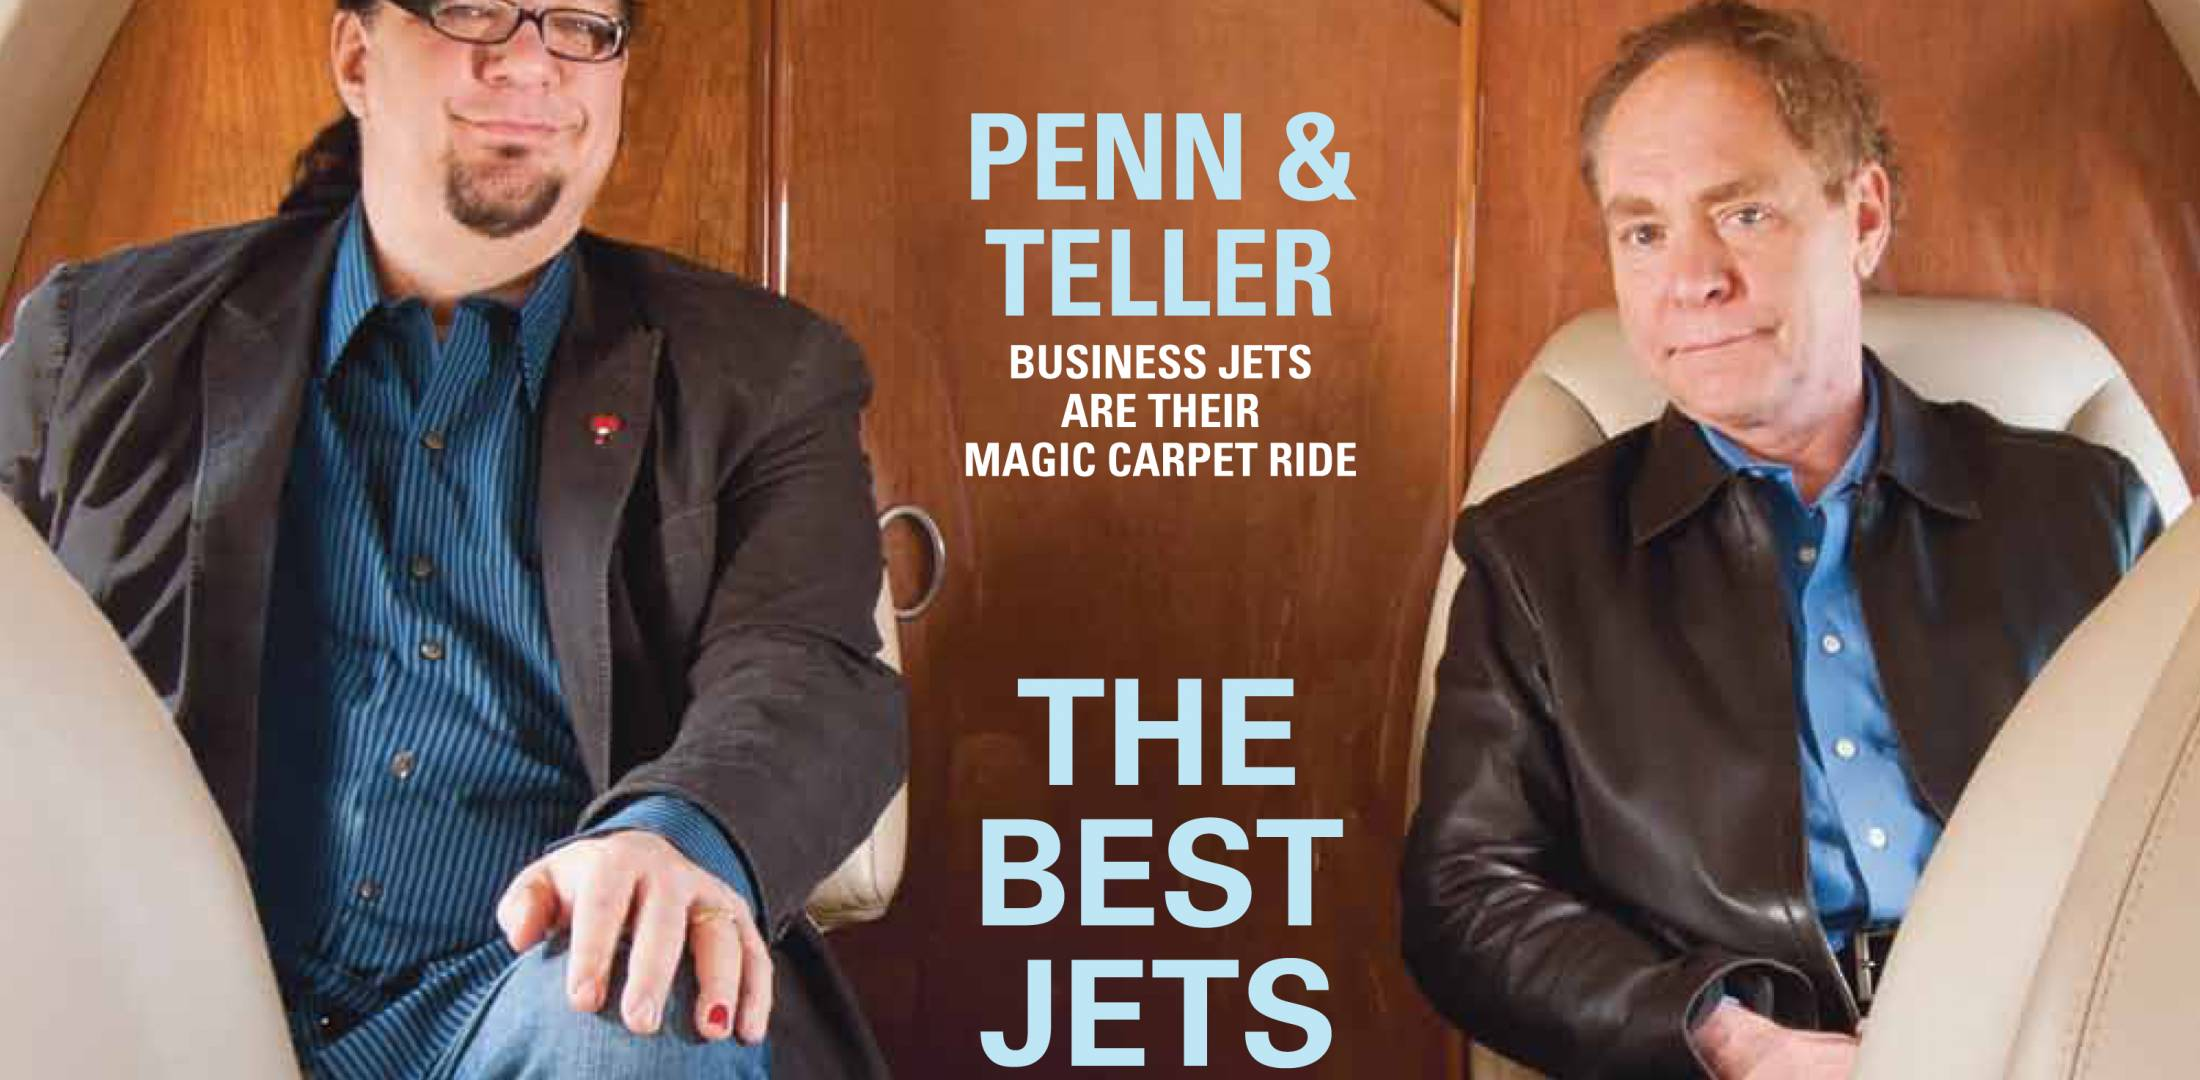 Business Jet Traveler's 10th Anniversary Issue